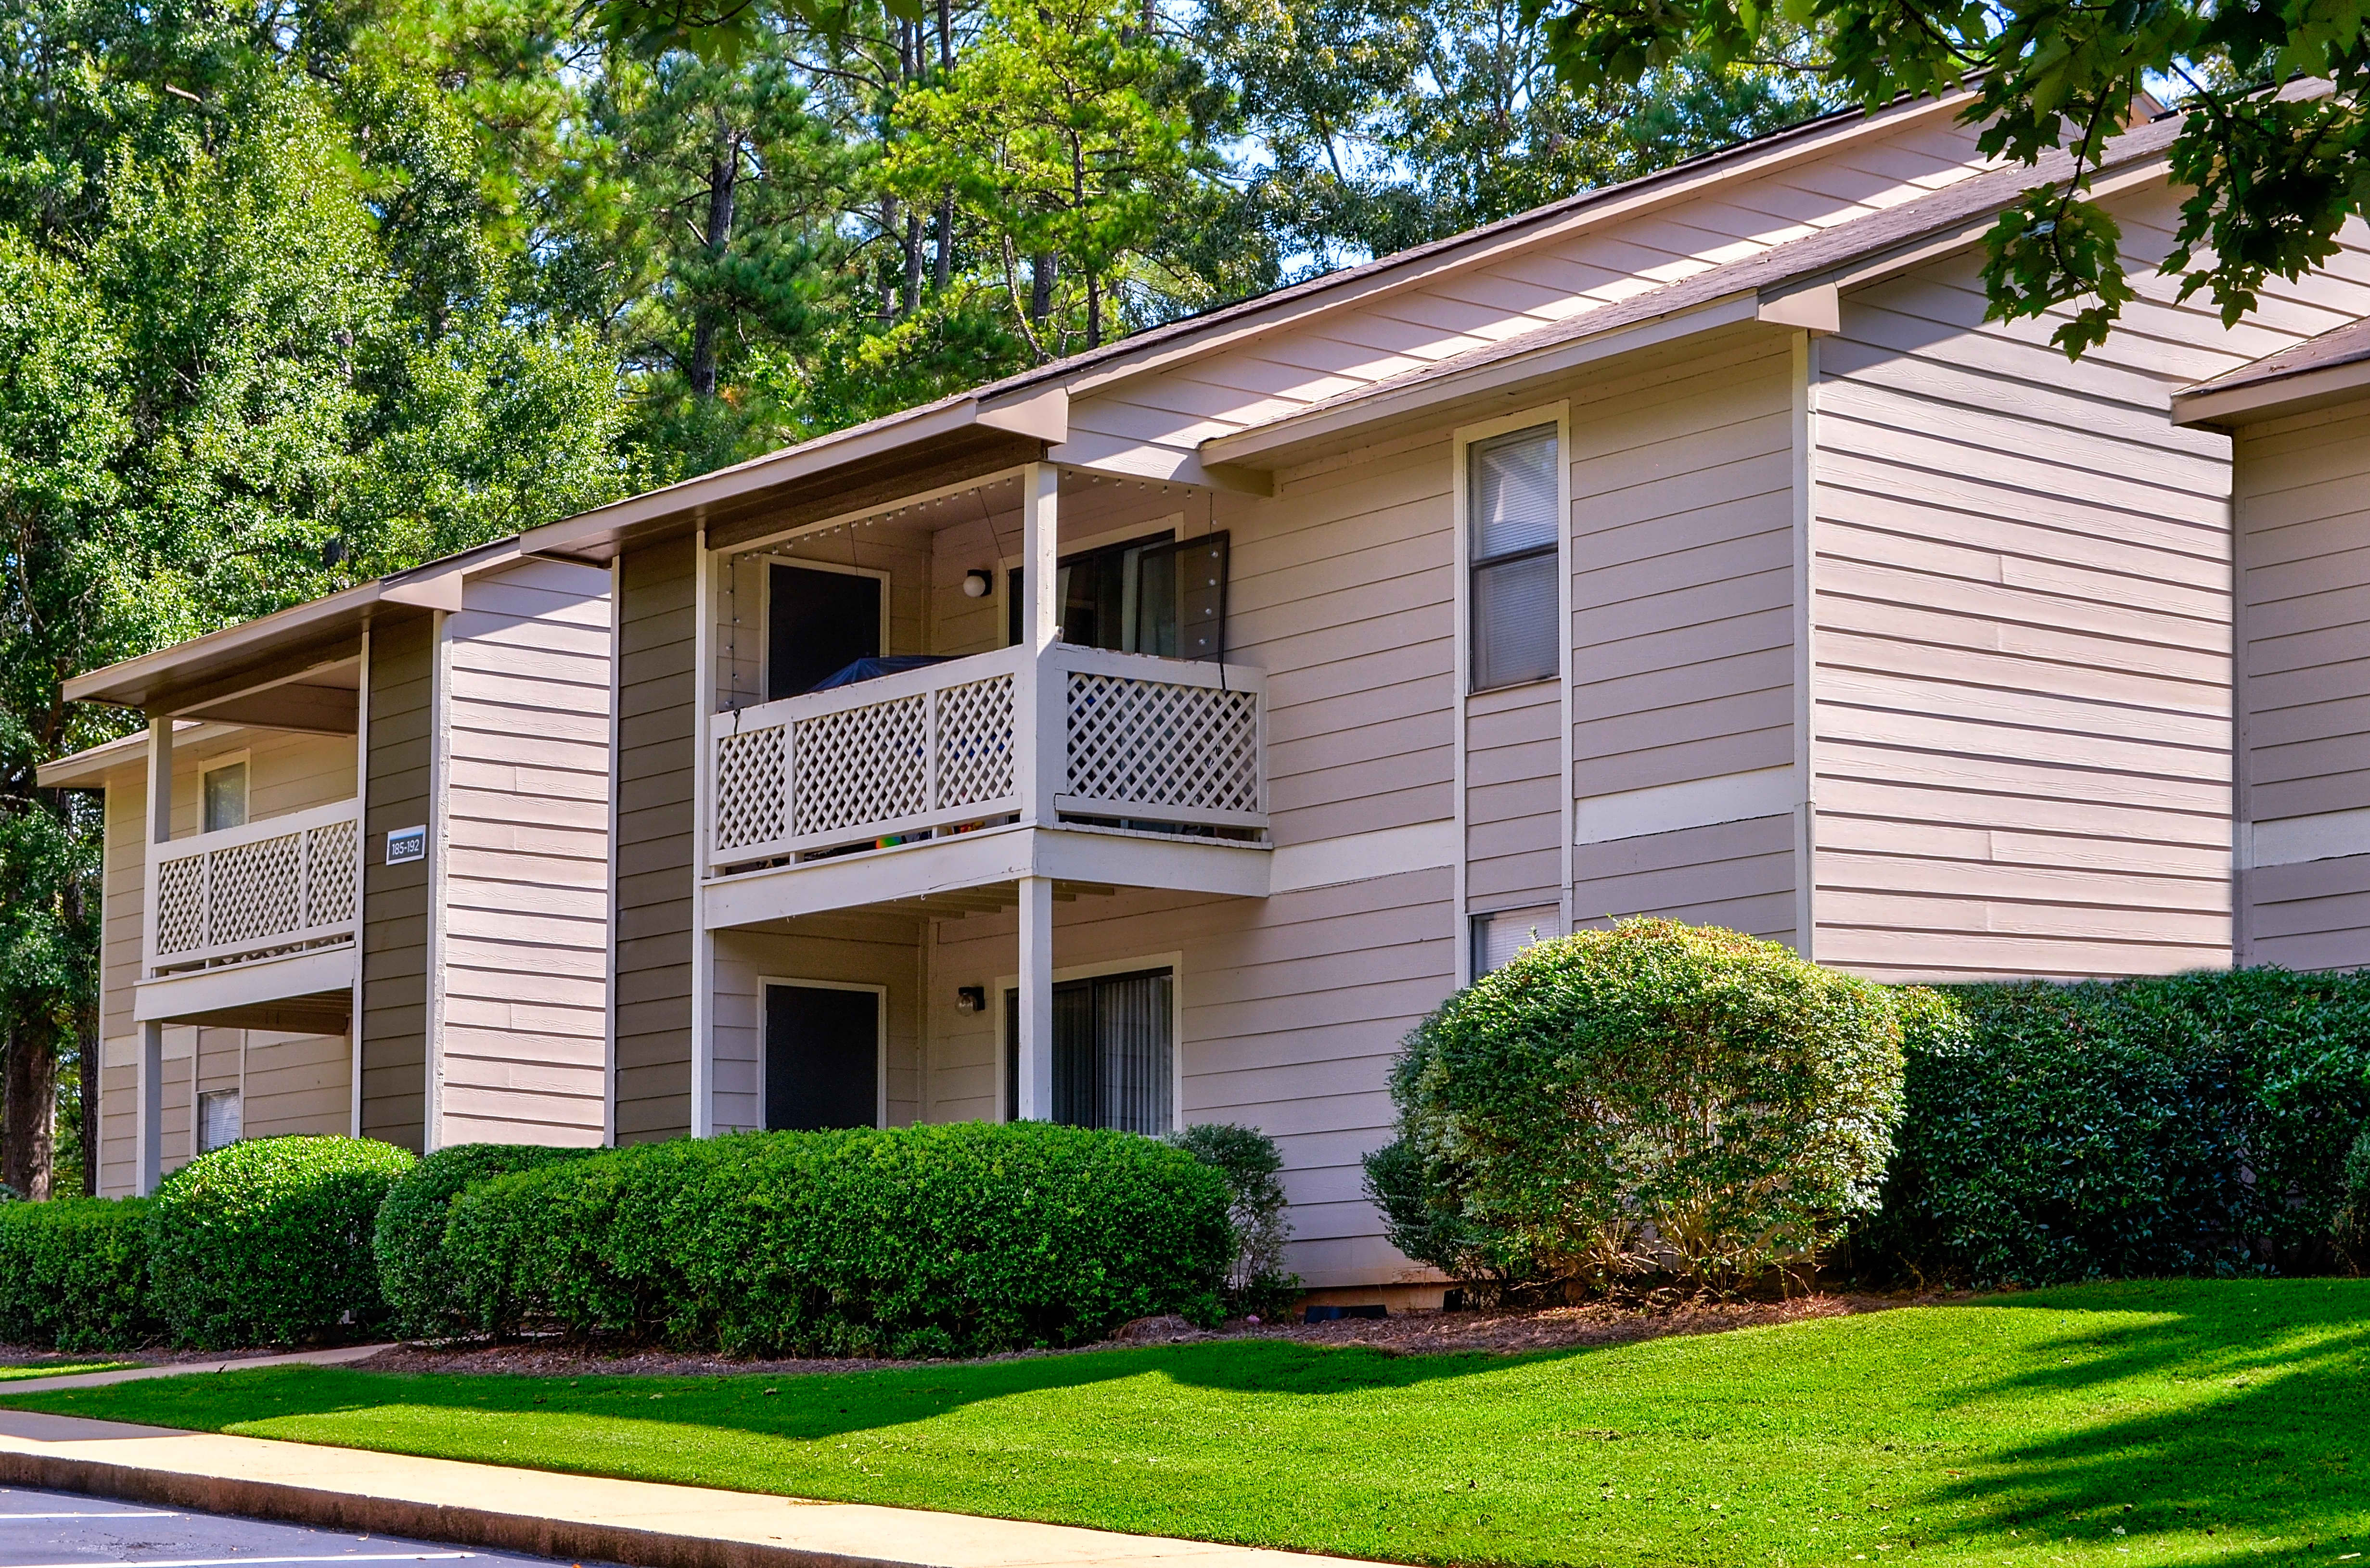 Apartments Near Mercer Legacy At River Crossing for Mercer University Students in Macon, GA